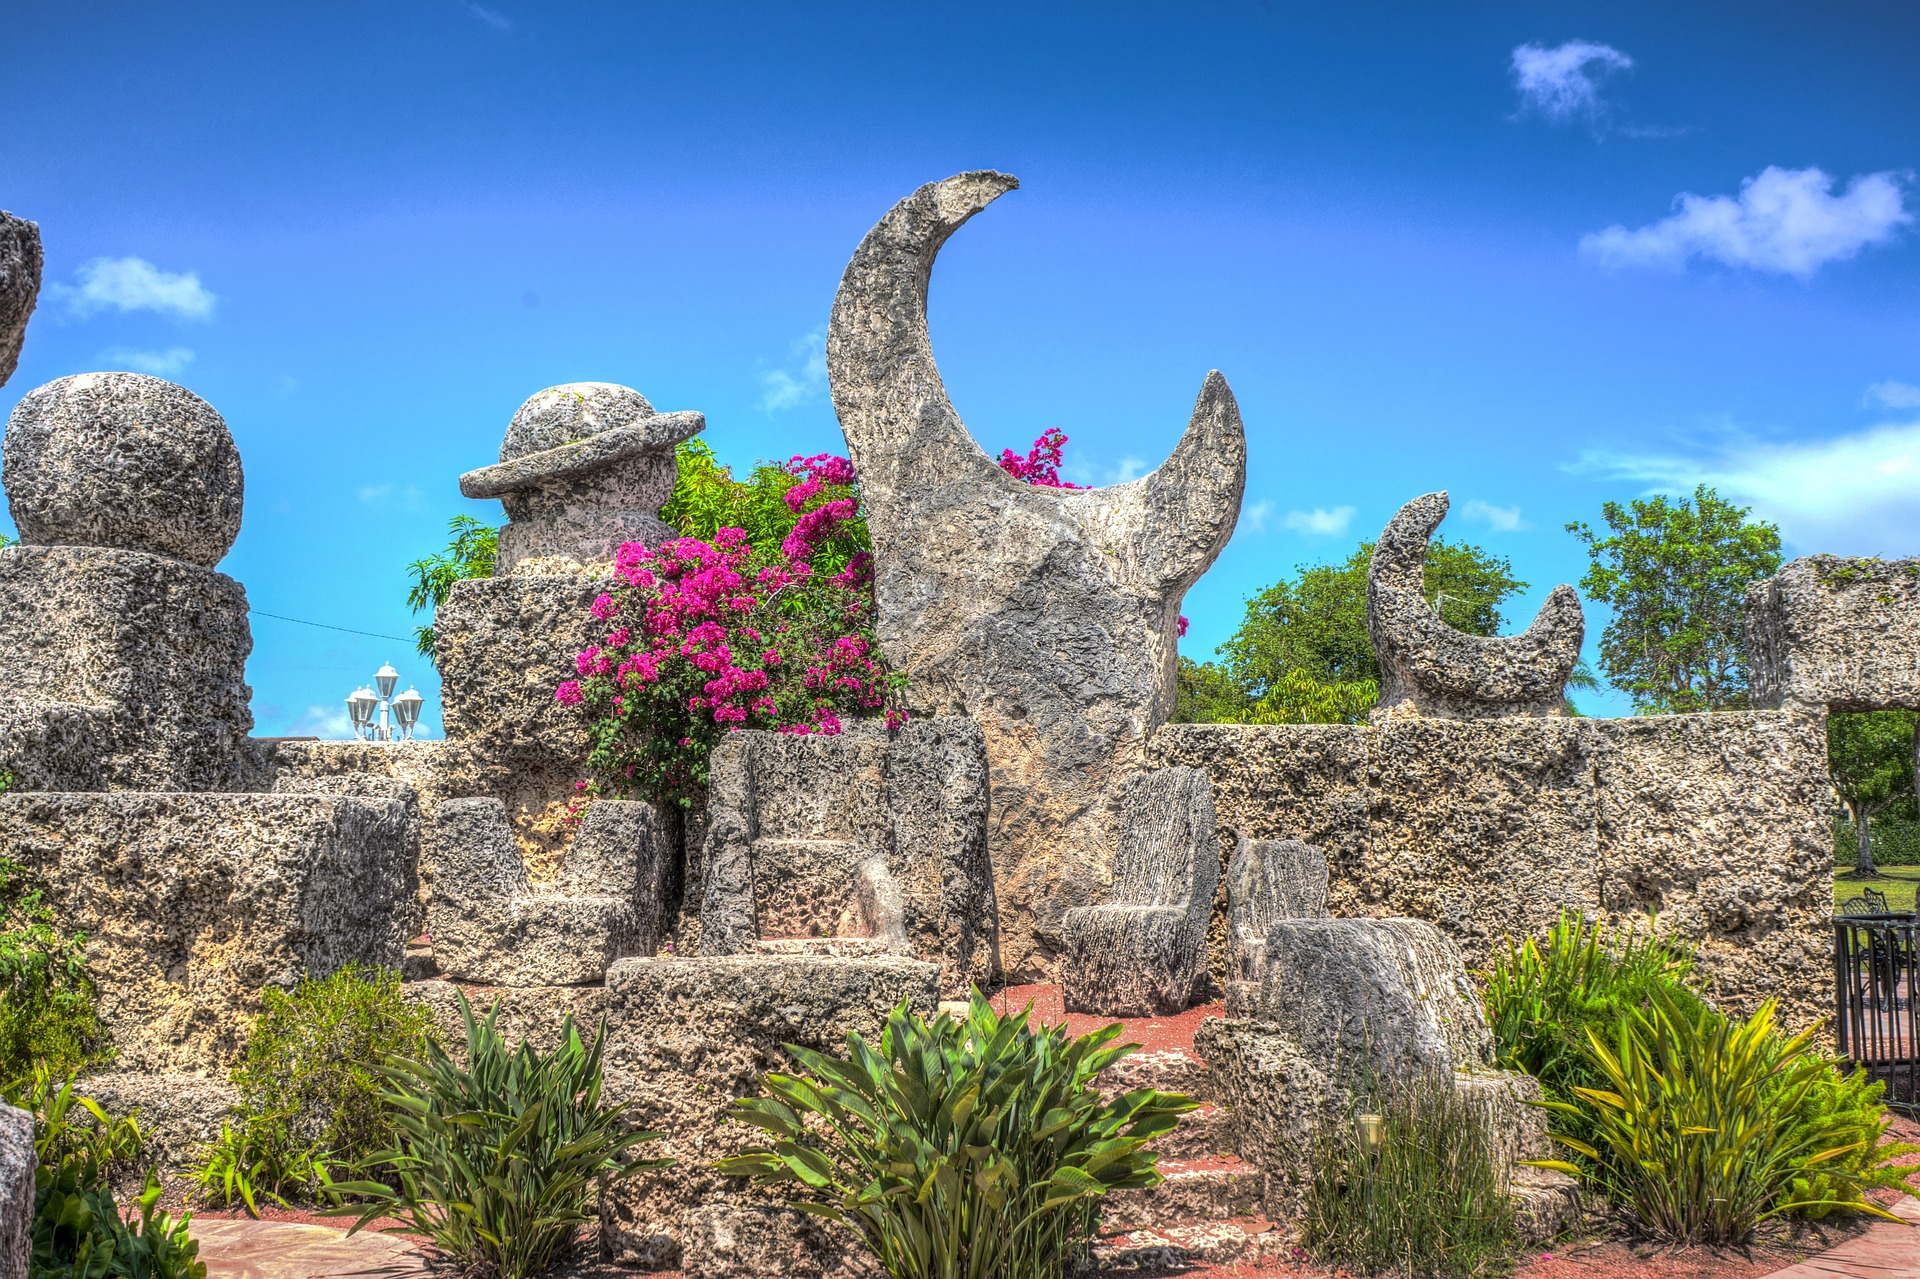 Things to Do in Florida: Visit the Coral Castle